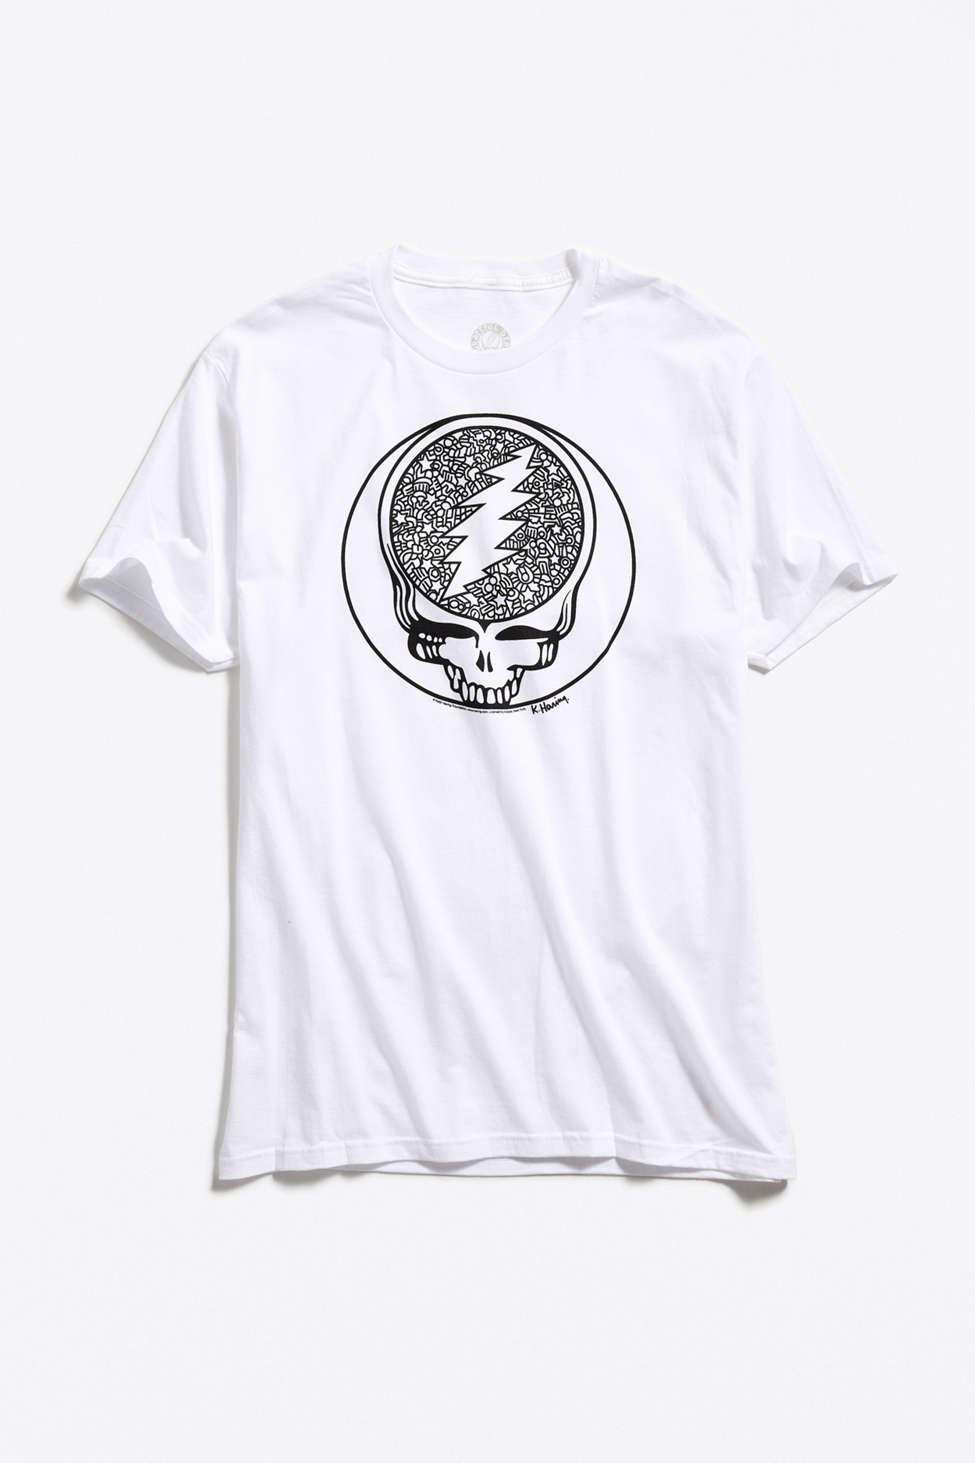 bce664ca Urban Outfitters Grateful Dead X Keith Haring Tee in White for Men ...